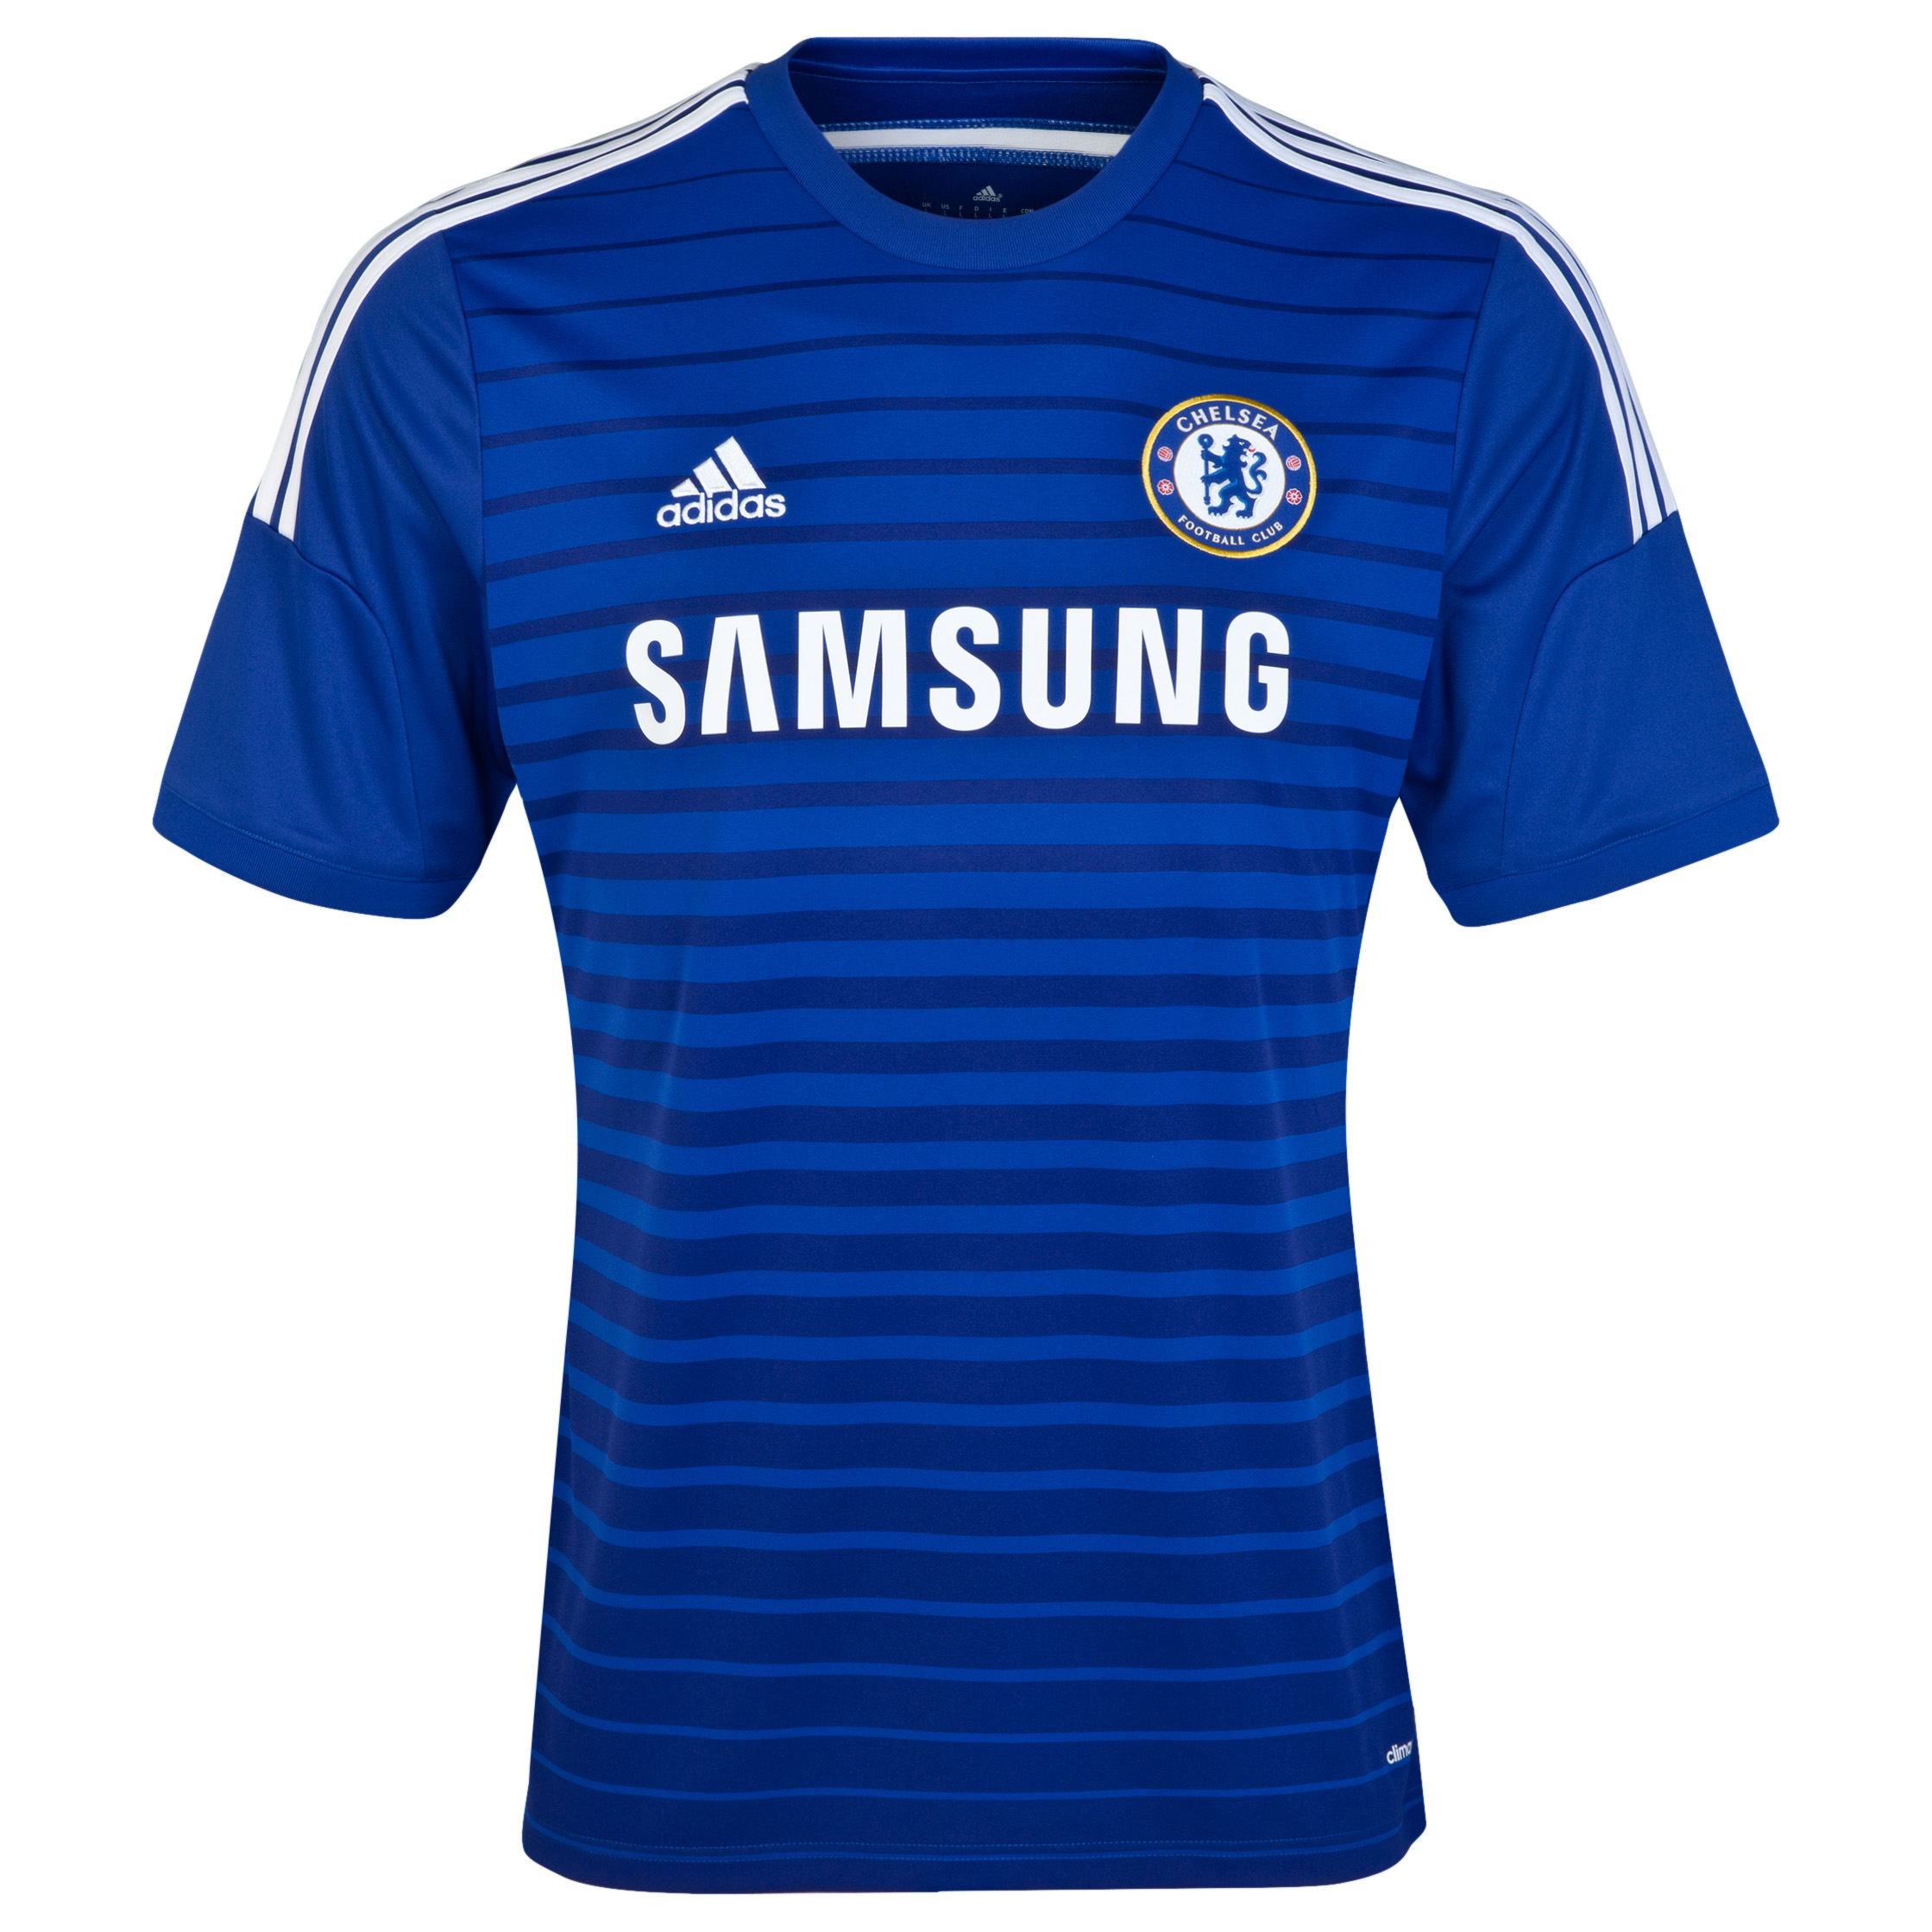 Buy Chelsea Home Kit 2014/15 Outsize Blue